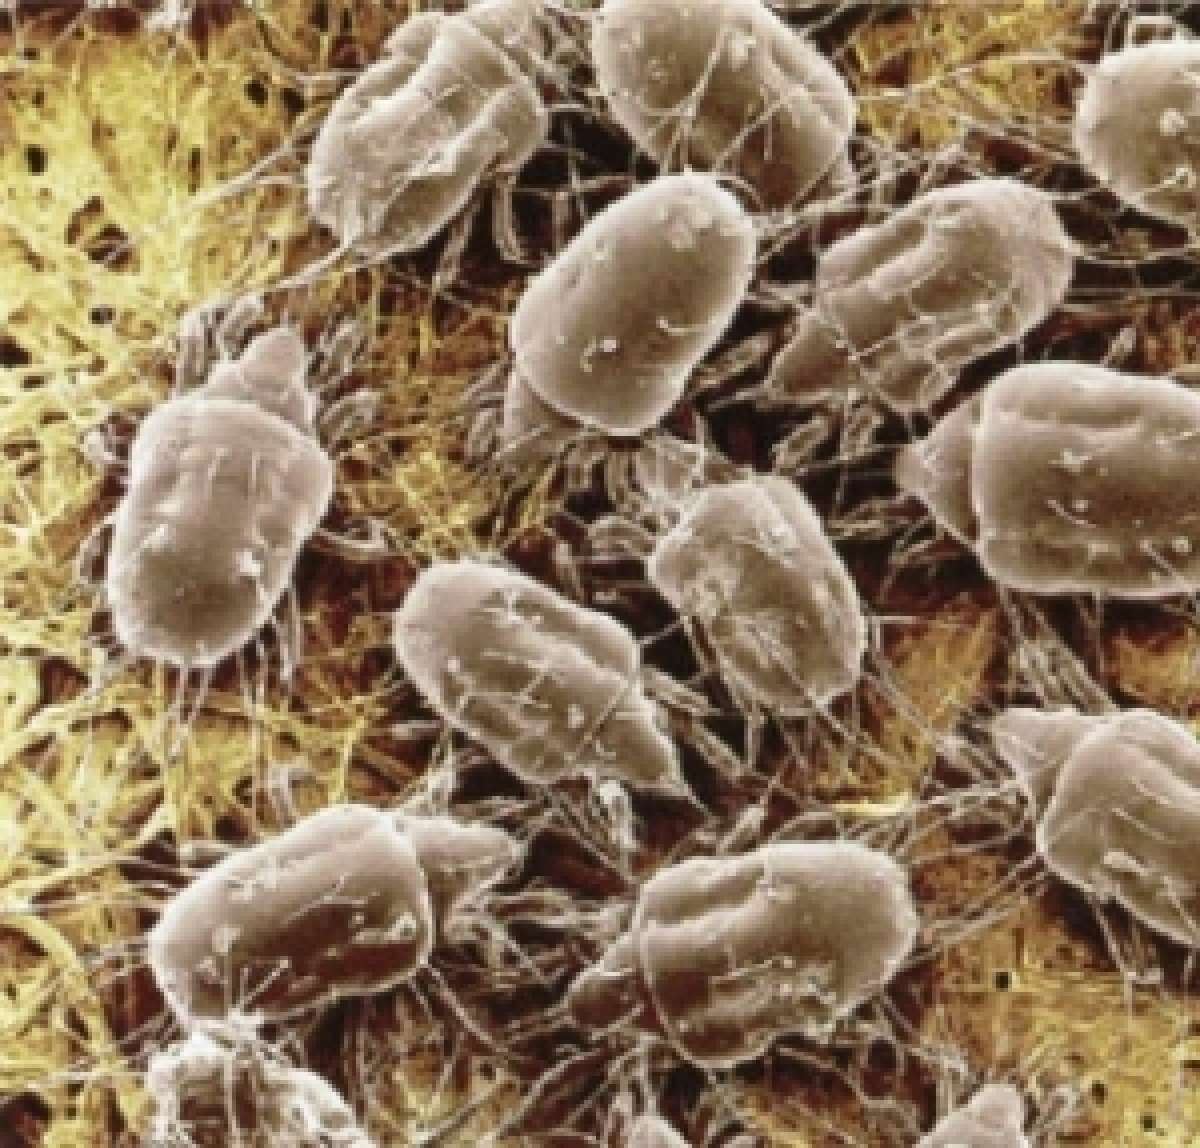 Dust Mites - Control of House Dust Mites